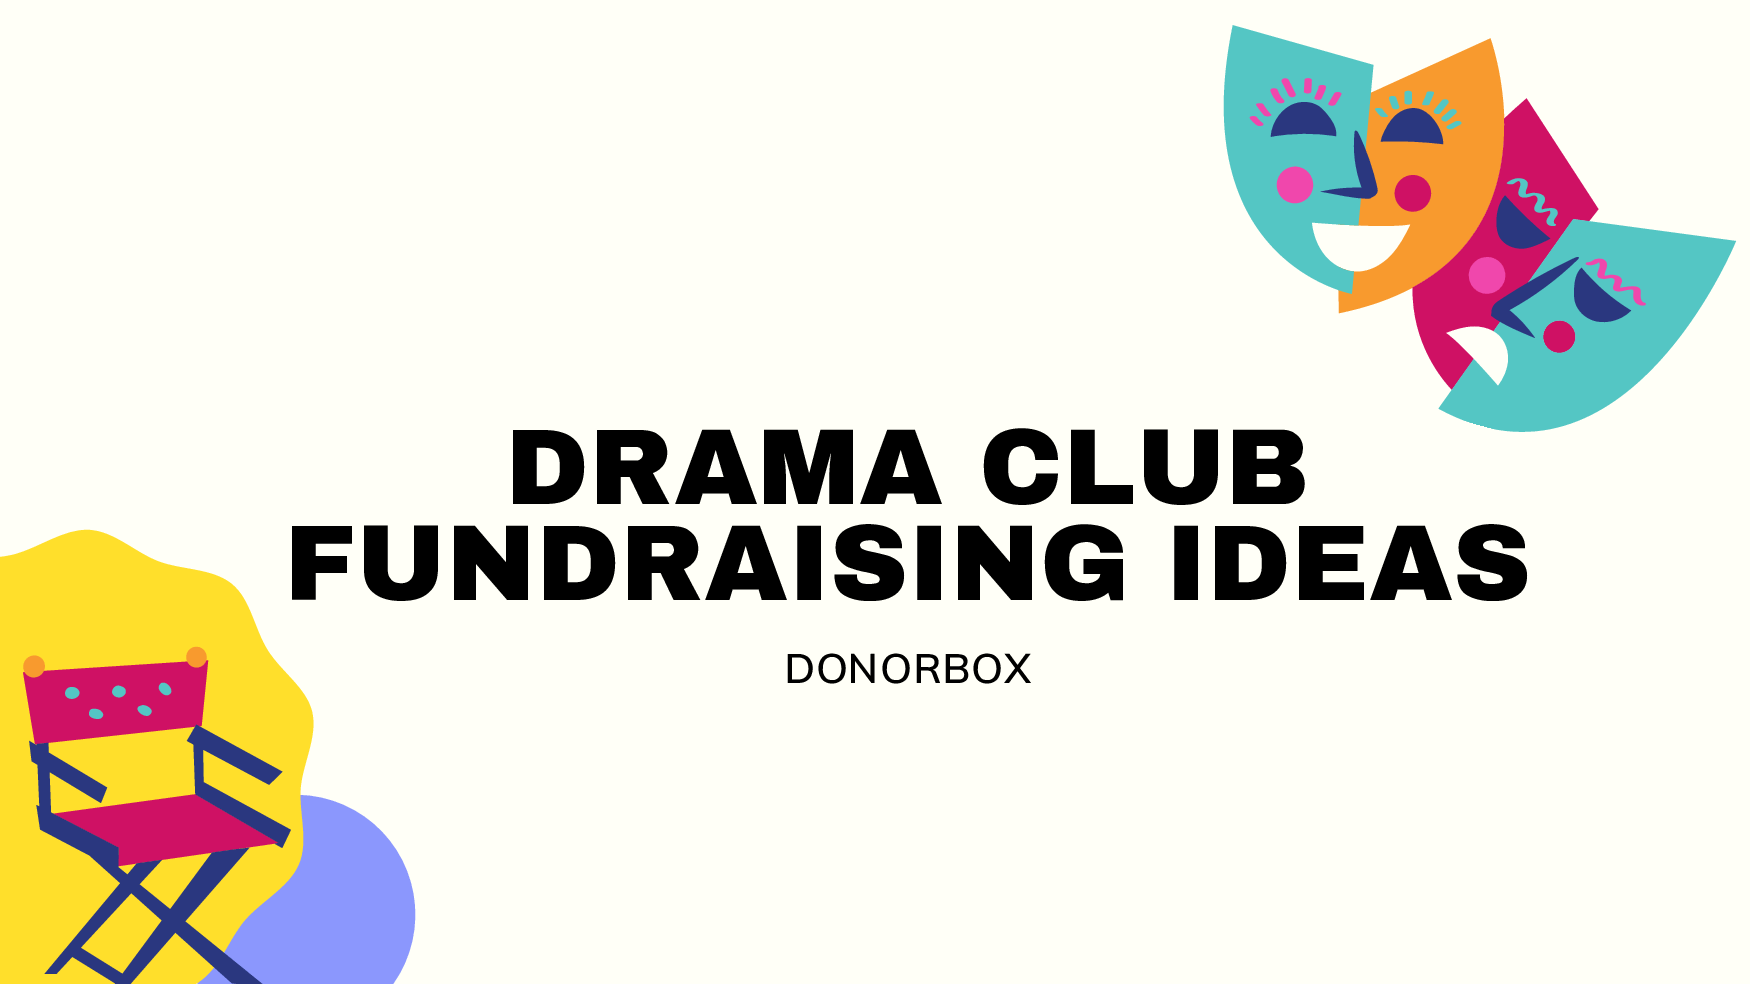 12 Unique Fundraising Ideas for Drama Clubs and Theatre Groups